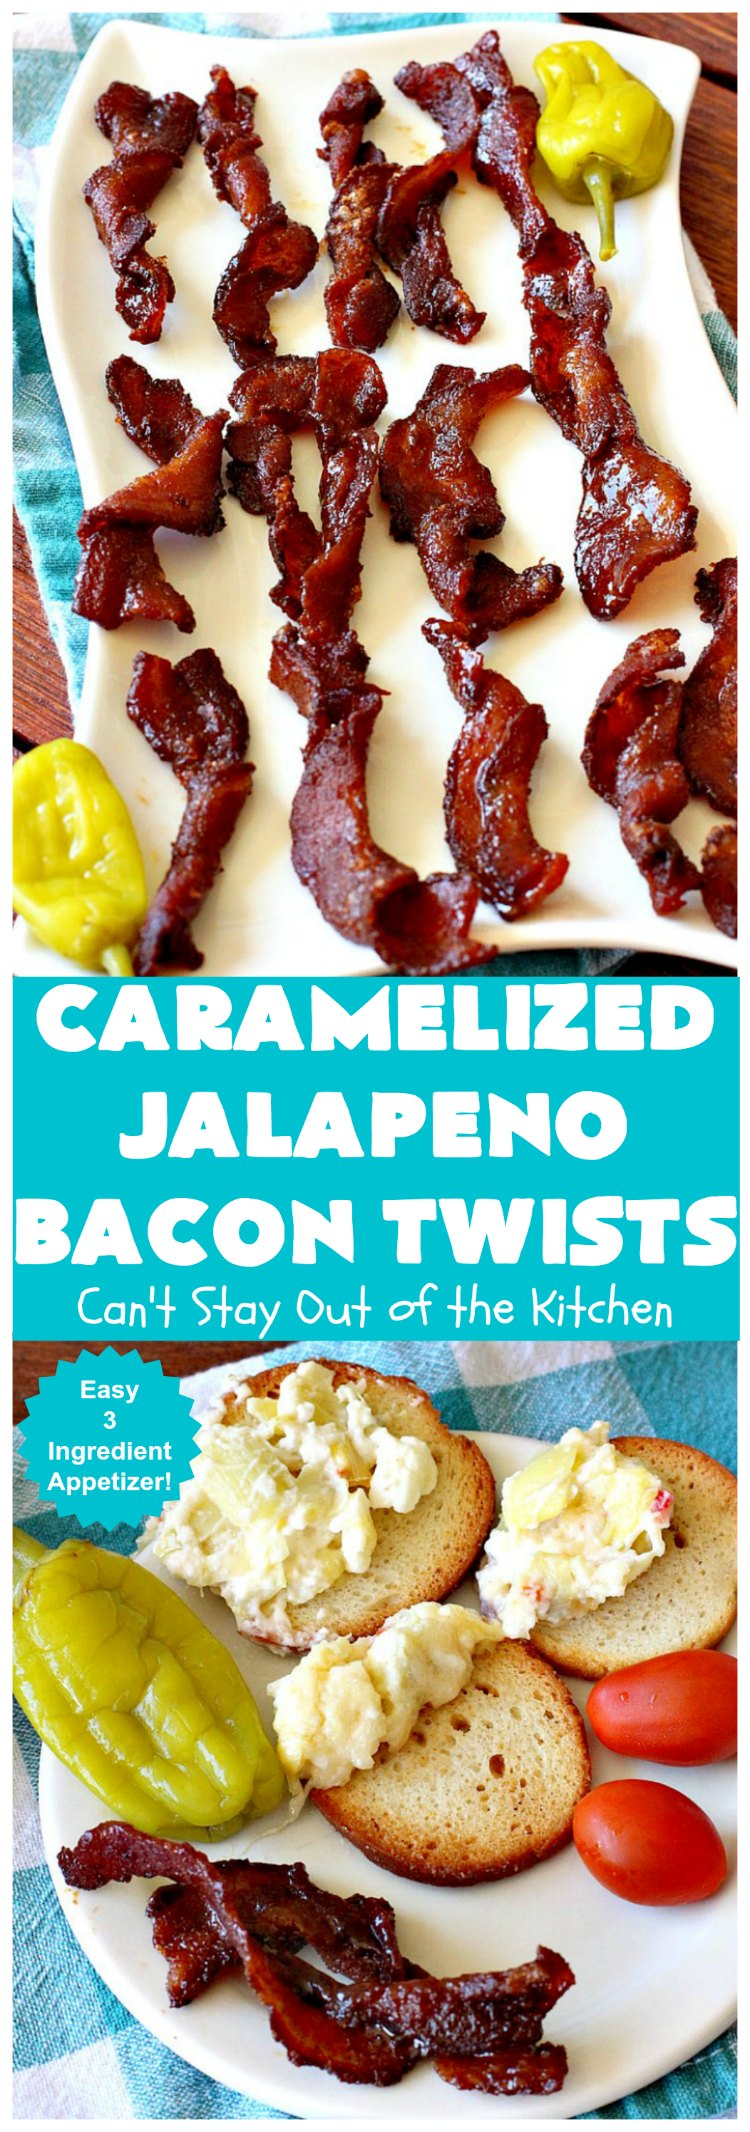 Caramelized Jalapeno Bacon Twists | Can't Stay Out of the Kitchen | this sensational 3 ingredient #appetizer is perfect for any #tailgating or #holiday party. It's quick & easy to make and has enough heat to keep it interesting.  #TexMex #jalapenos #bacon #GlutenFree #3IngredientRecipe #HolidayAppetizer #GlutenFreeAppetizer #CaramelizedJalapenoBaconTwists